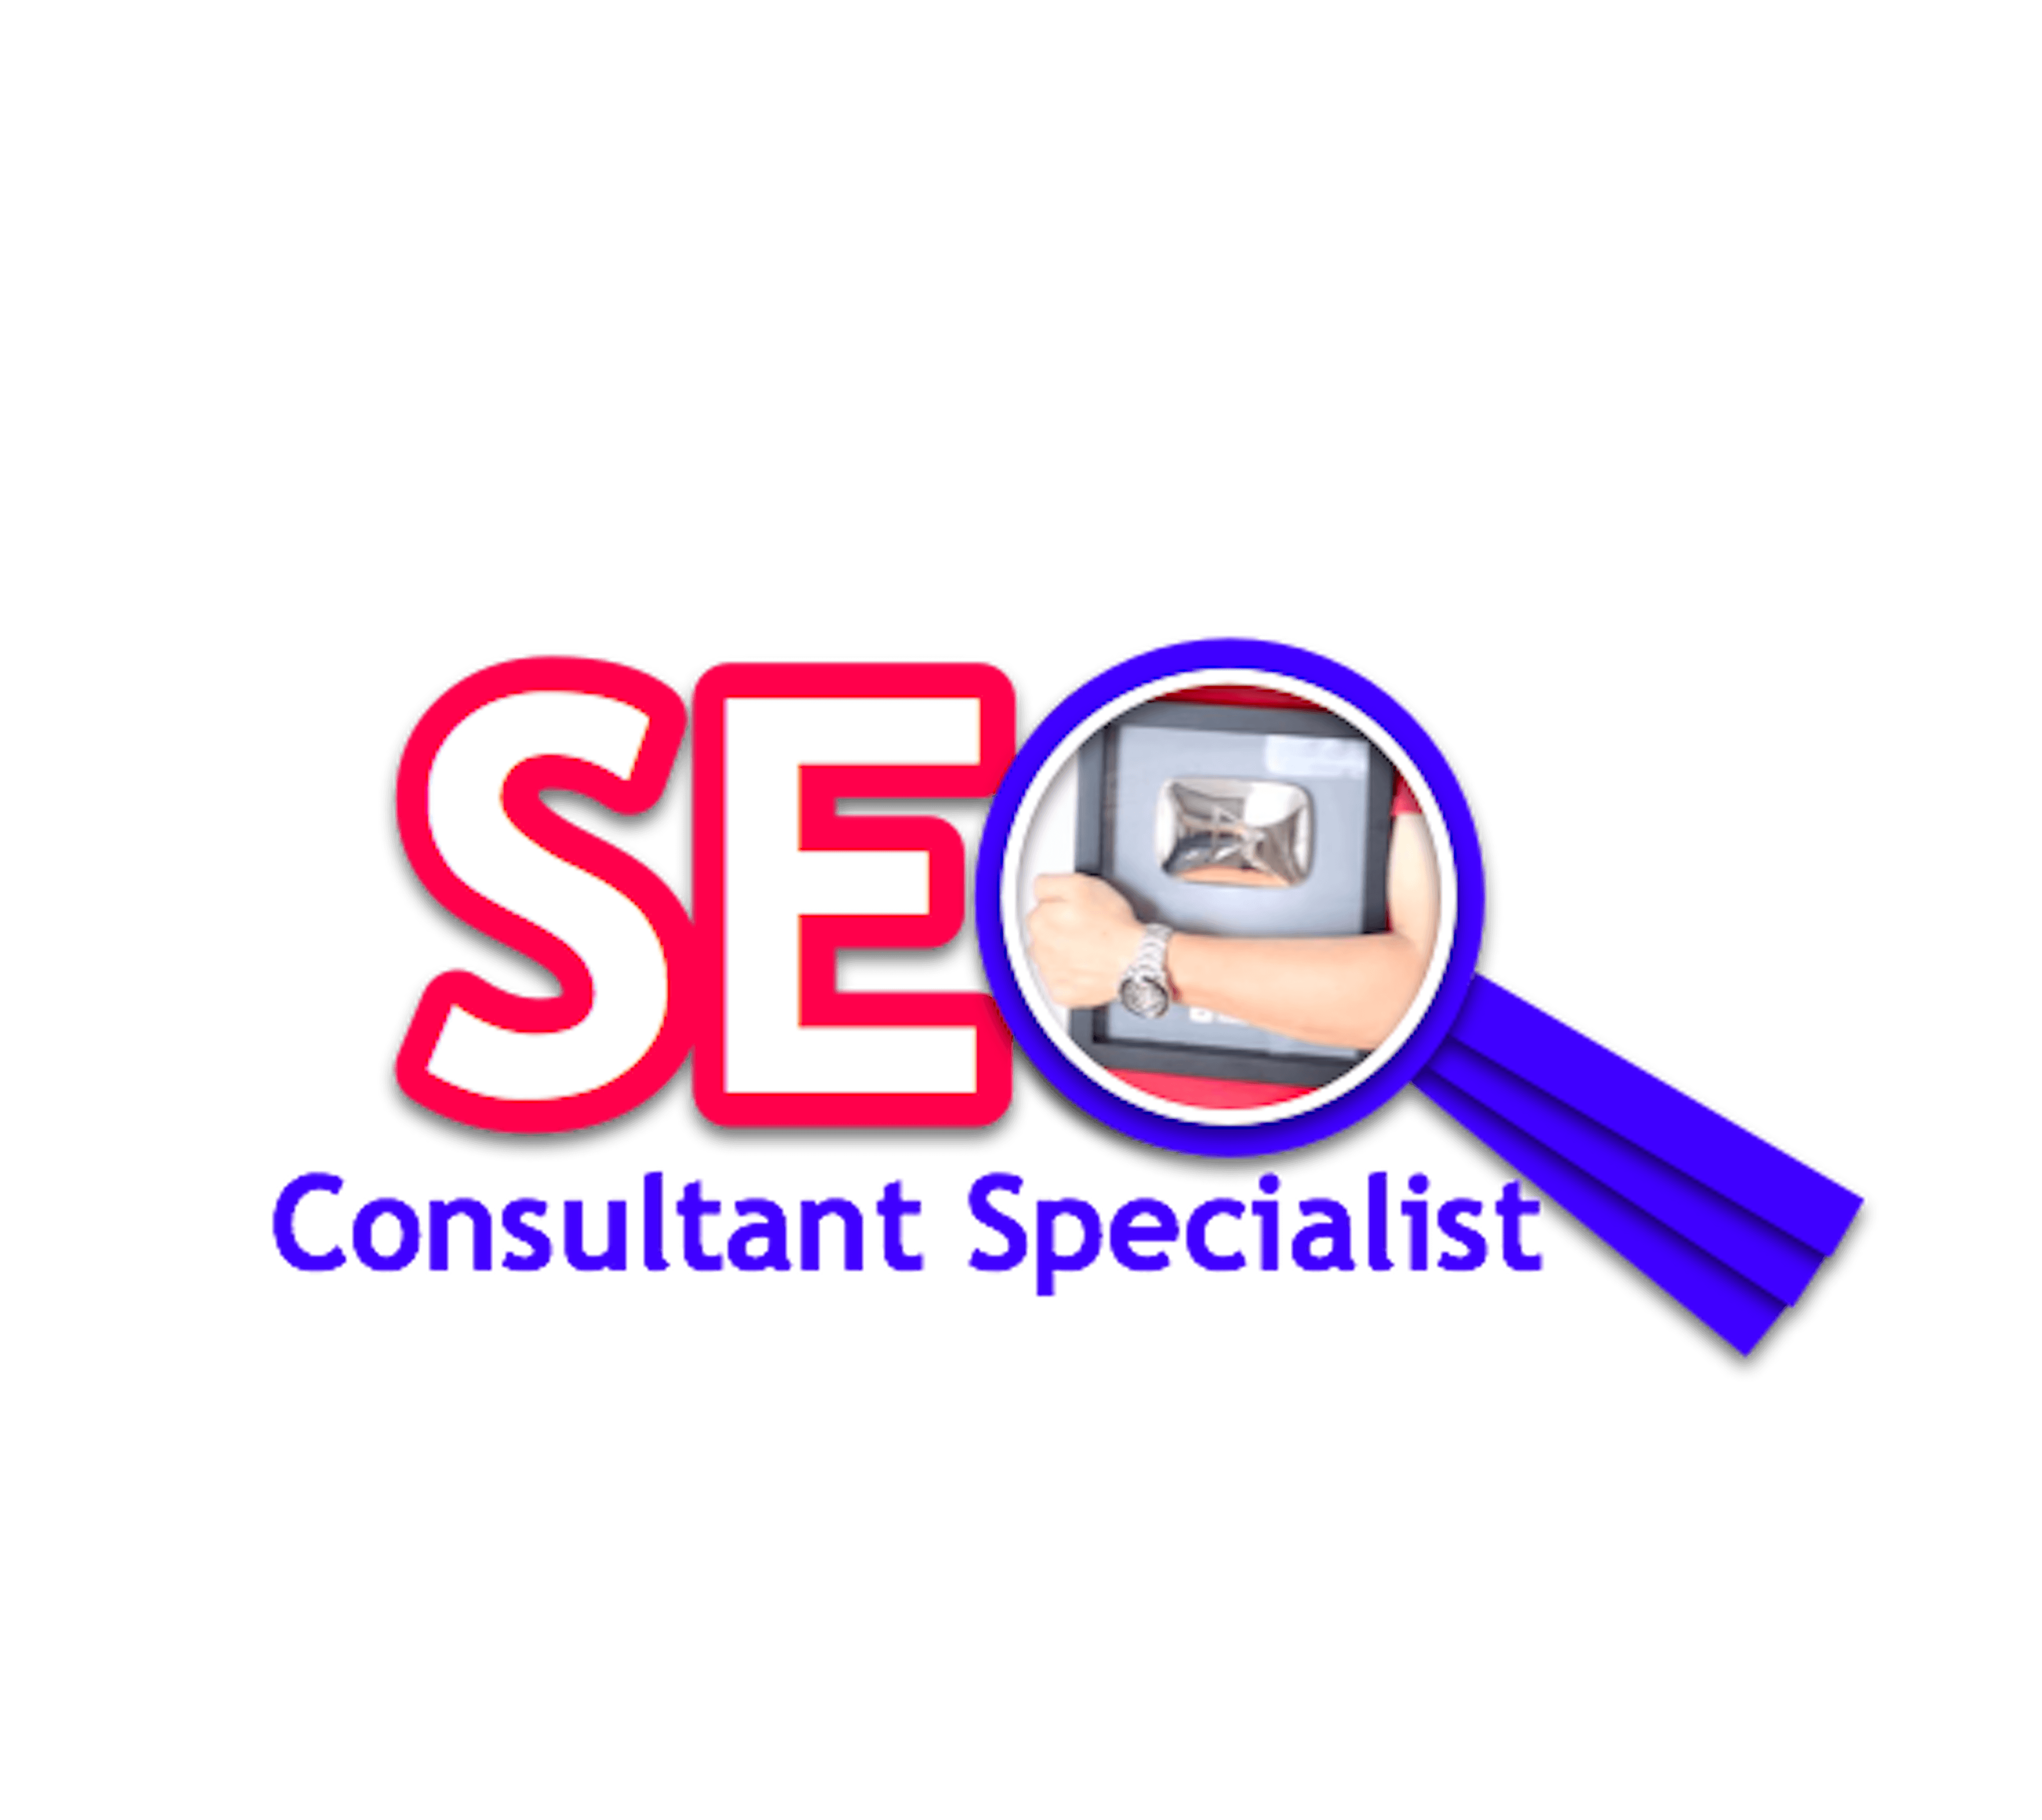 Youtube SEO Consultant Specialist